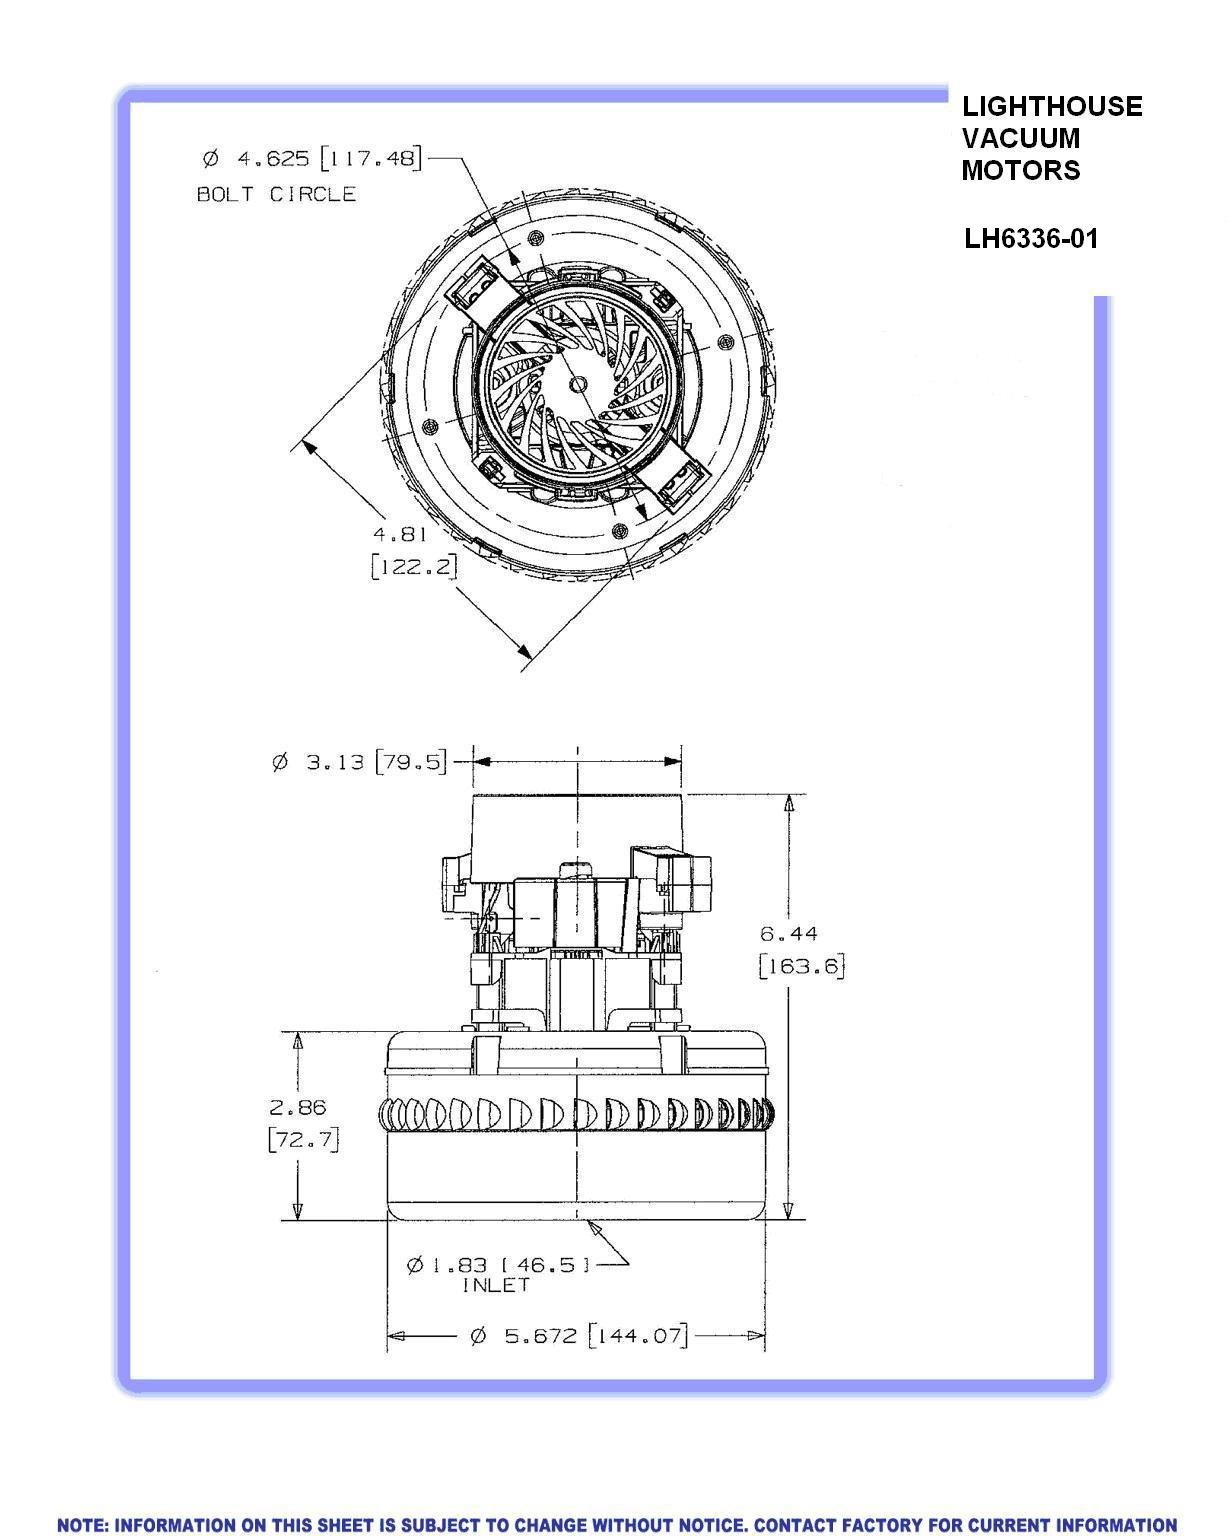 ametek motor wiring diagram | wiring library boat windshield wiper motor wiring diagram ametek motor wiring diagram